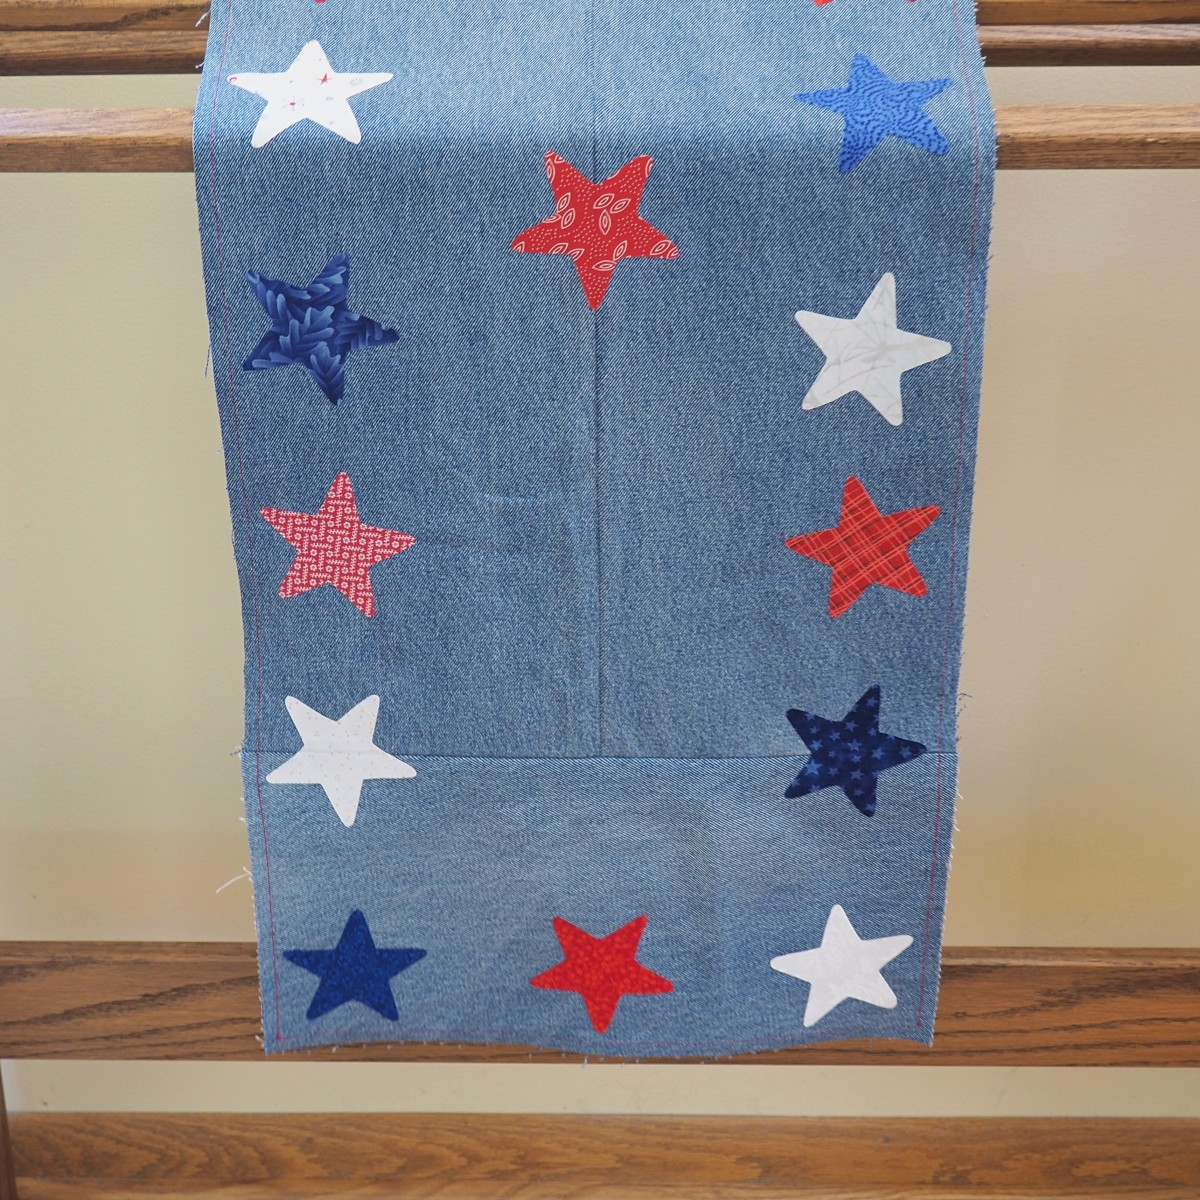 This patriotic table runner made from repurposed blue jeans and fabric scraps doesn't just have to be displayed on a table.  Hang it over a quilt rack for added color.